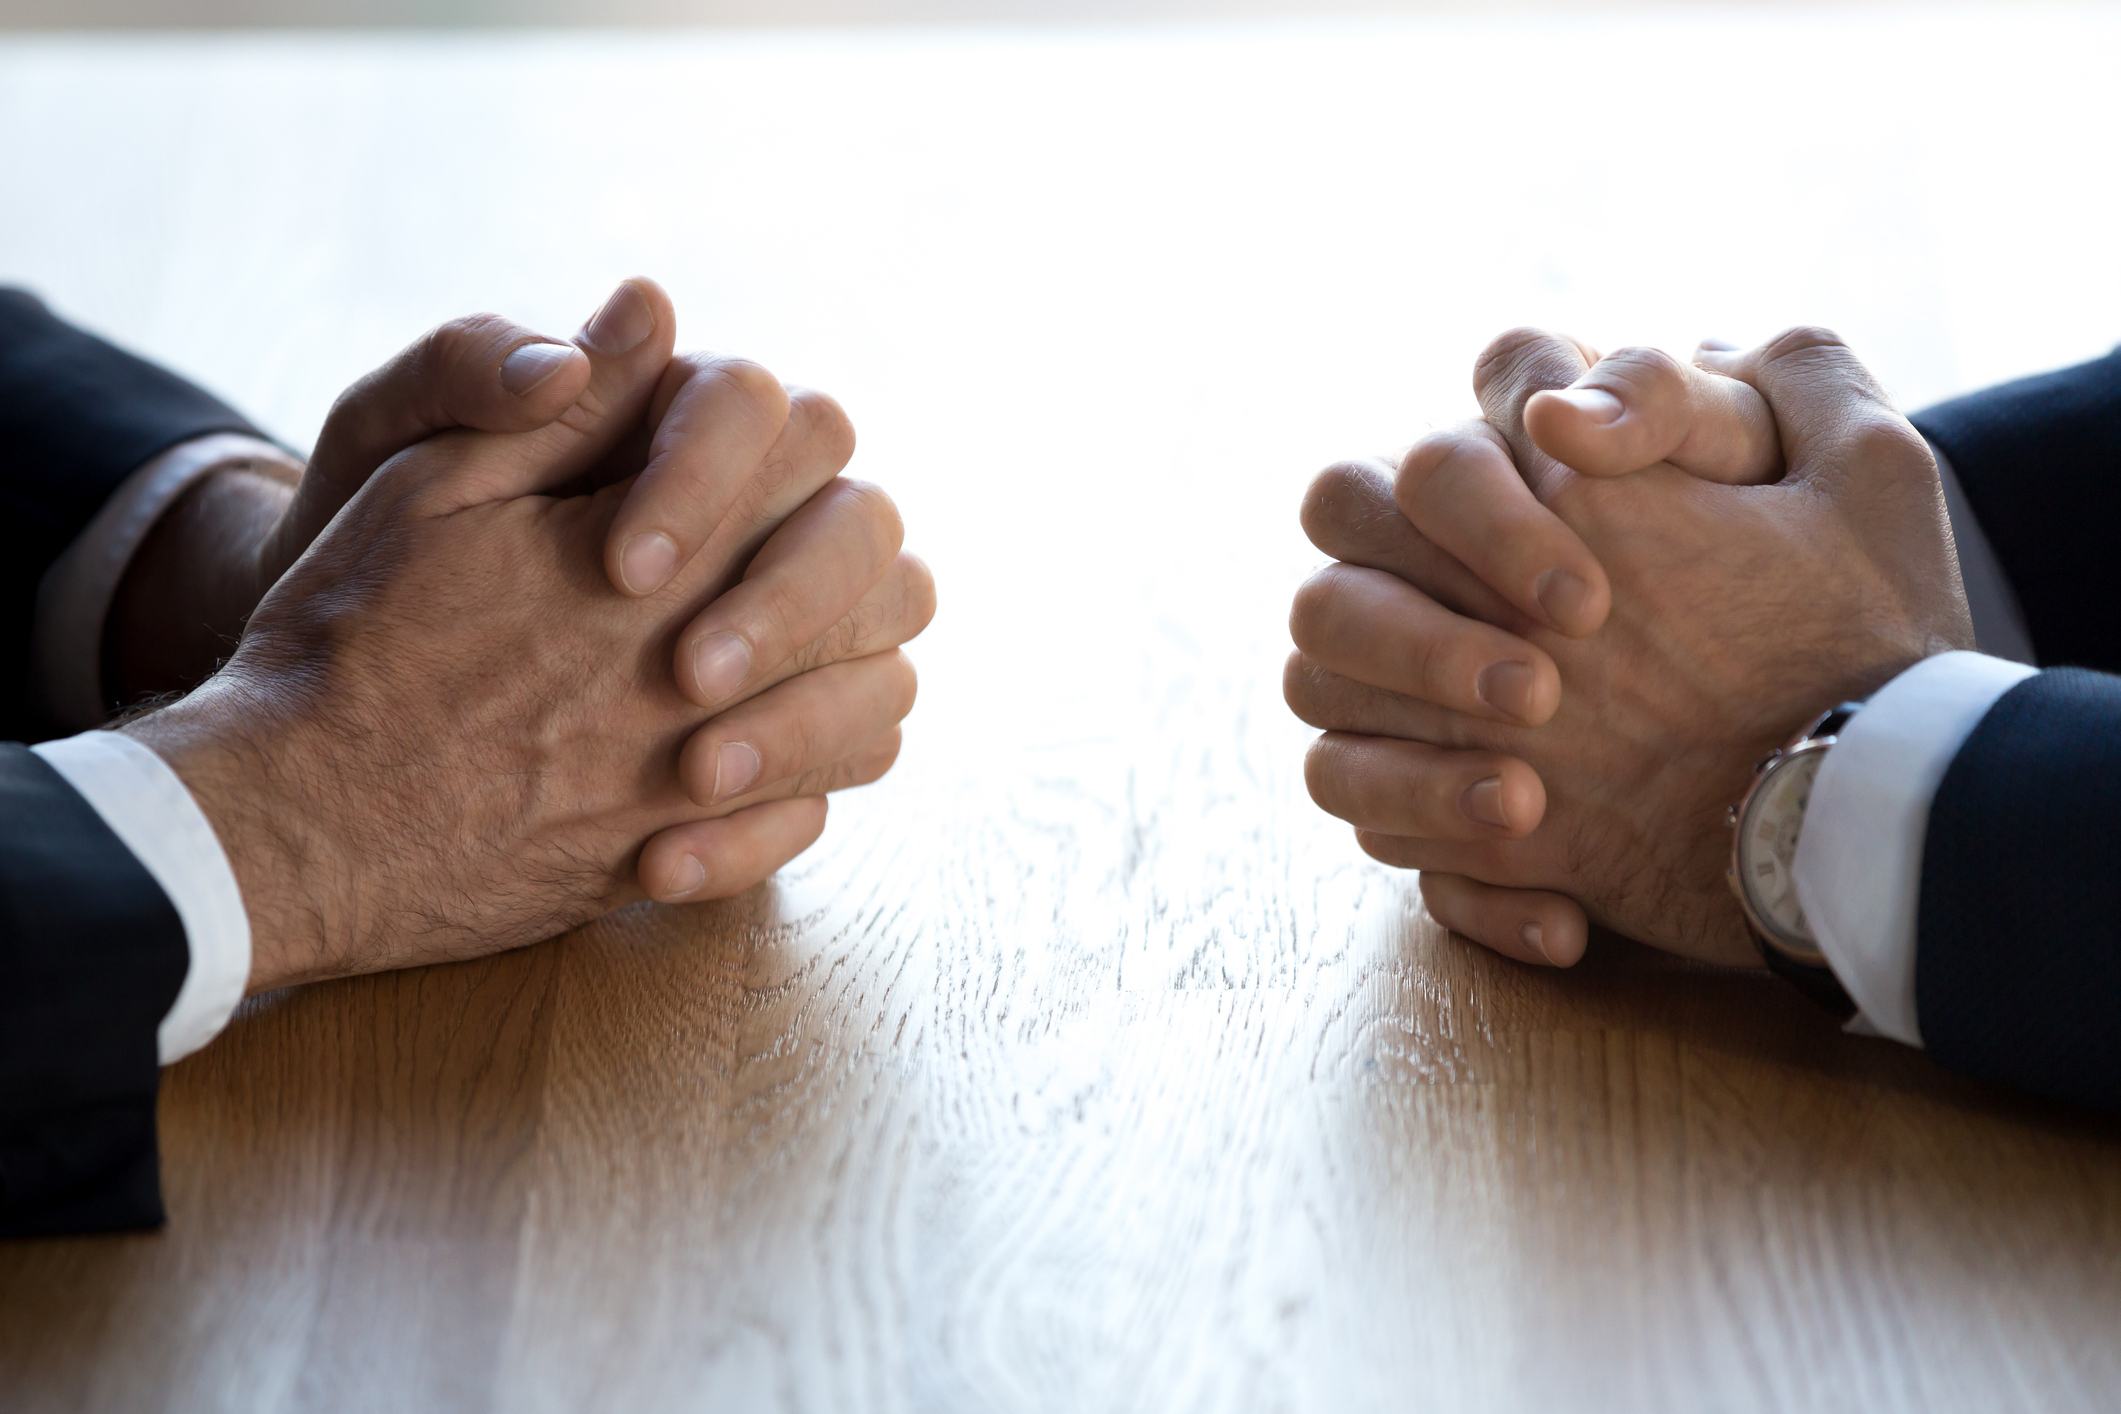 Clasped hands of two business men negotiators opponents opposite on table as politicians dialogue debate, applicant hr job interview, negotiating competitors, rivals confrontation challenge concept. iStock